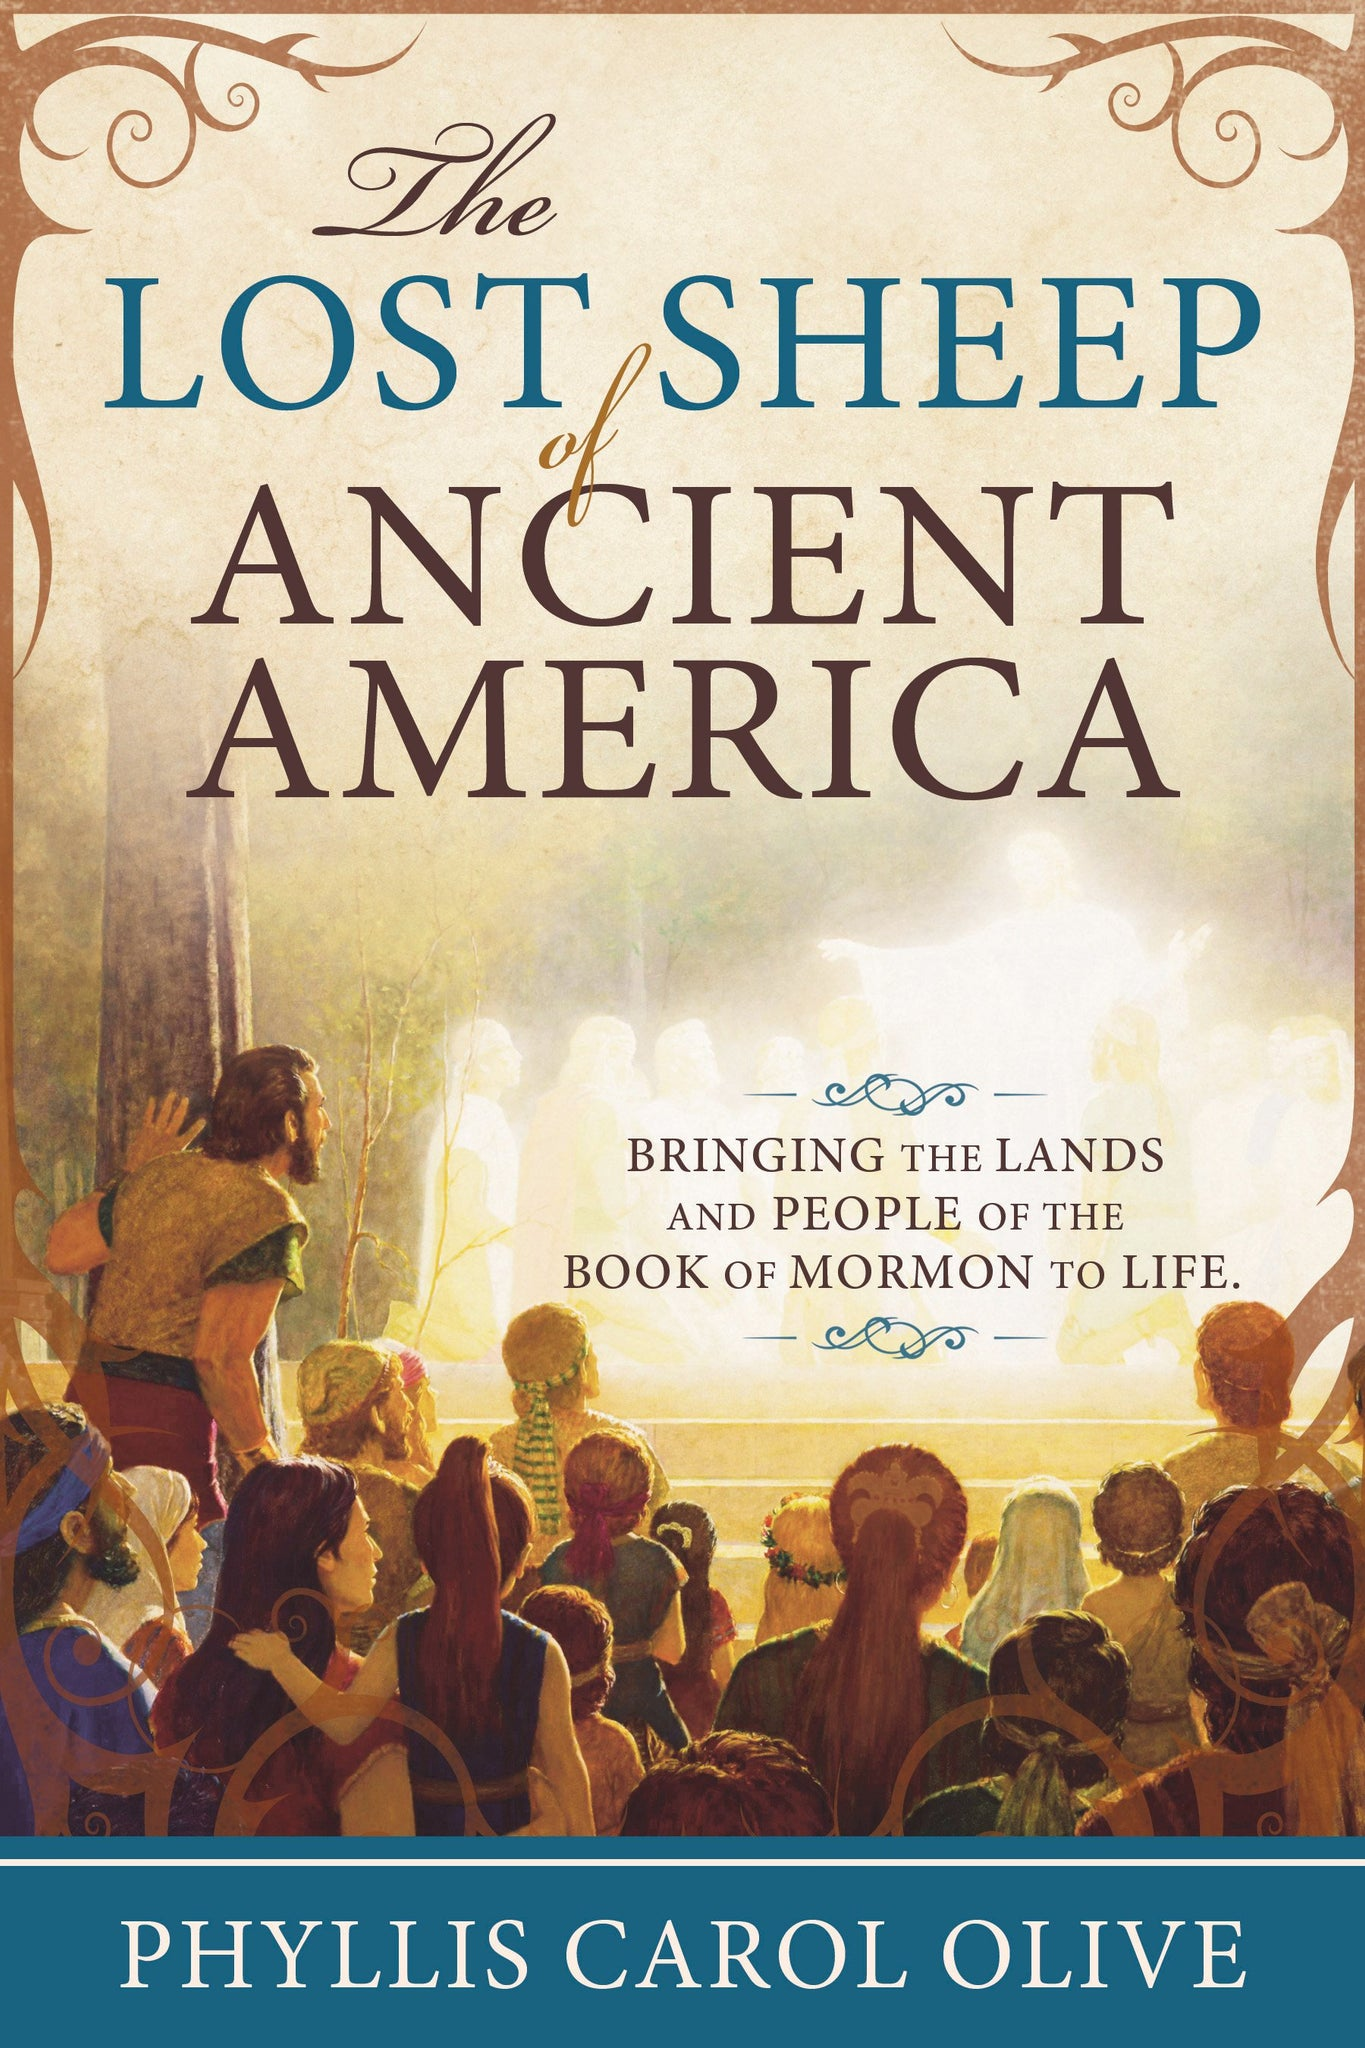 The Lost Sheep of Ancient America: Bringing the Lands and People of the Book of Mormon to Life - Paperback